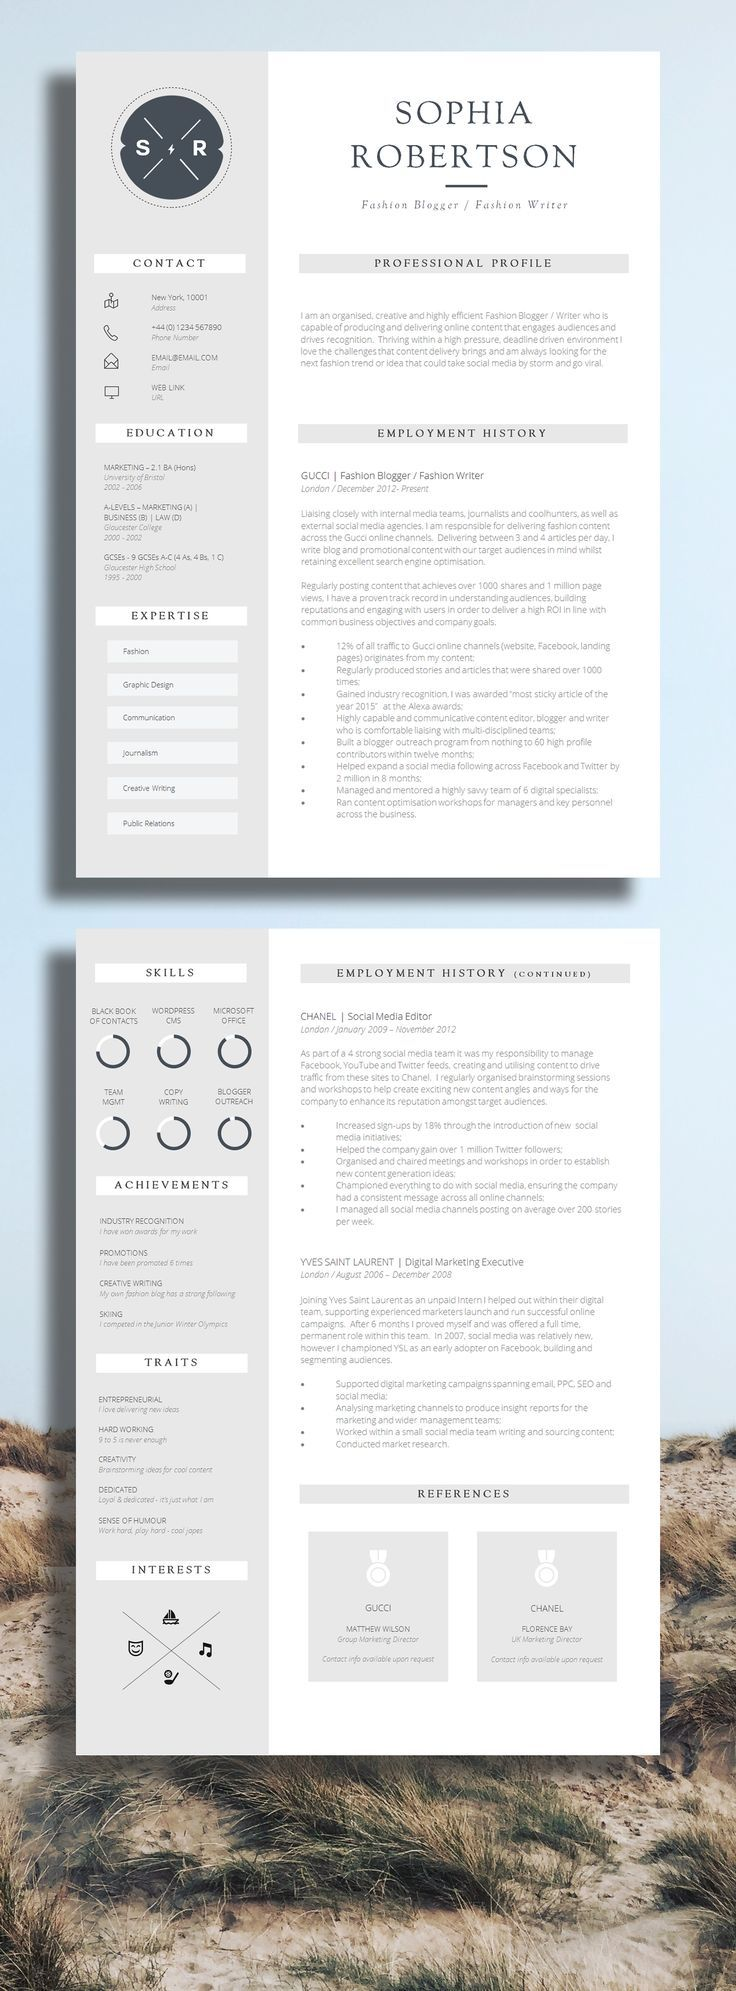 professional creative resume template for ms word